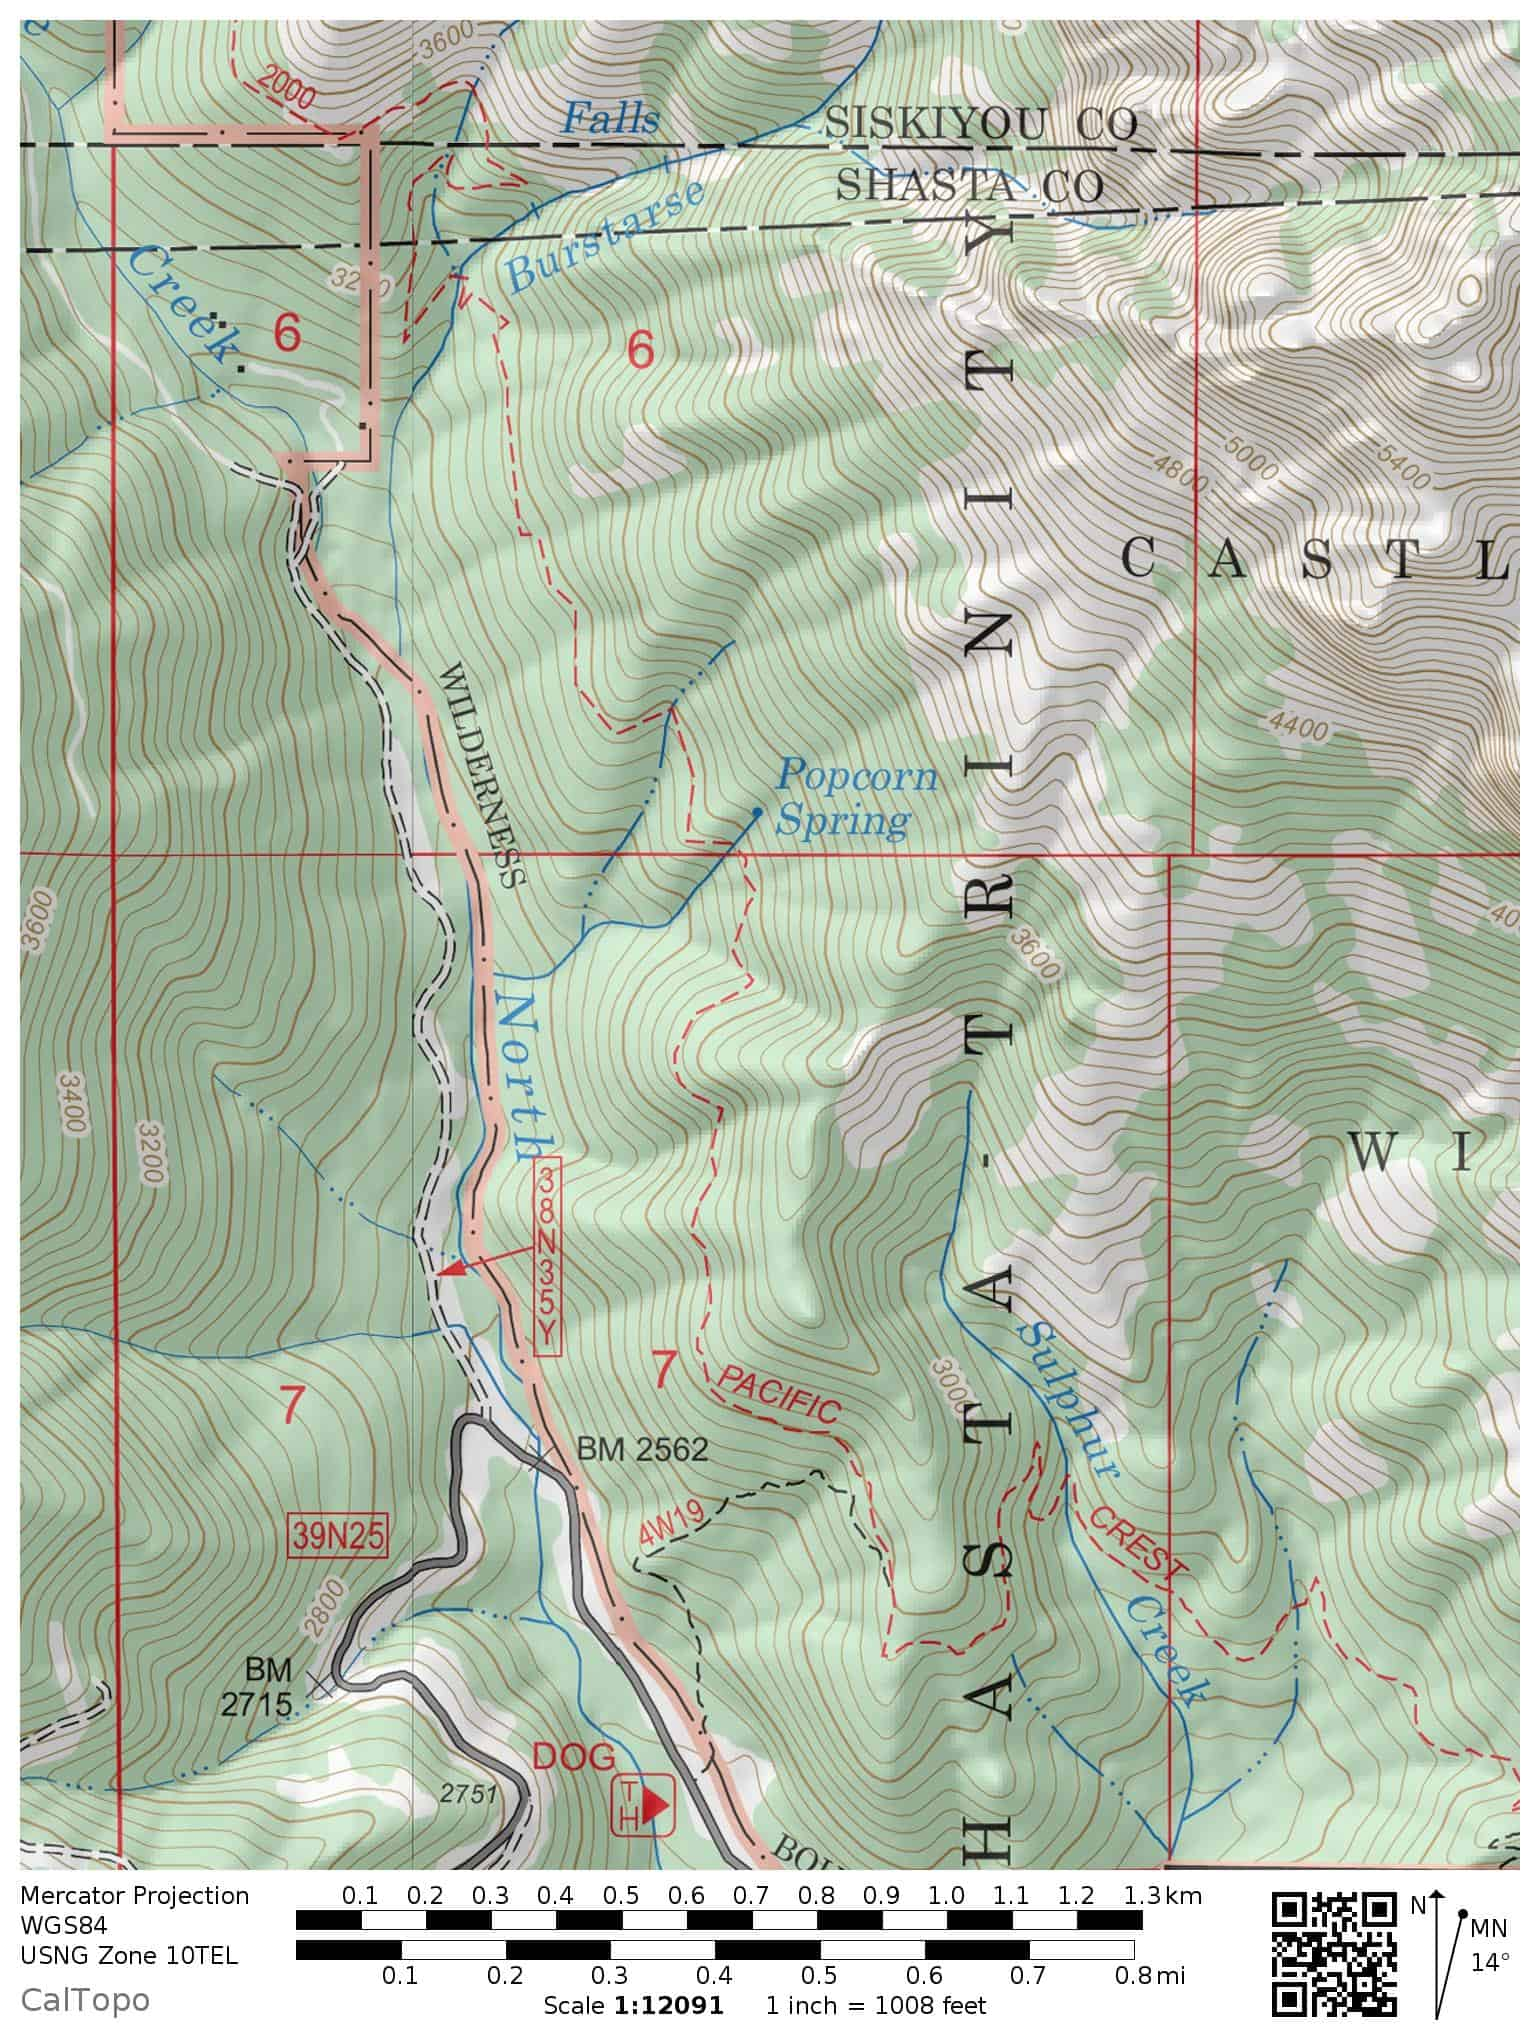 Topographic trail map to Burstarse Fall via the Pacific Crest Trail. Includes the Dog Trail and trailhead.